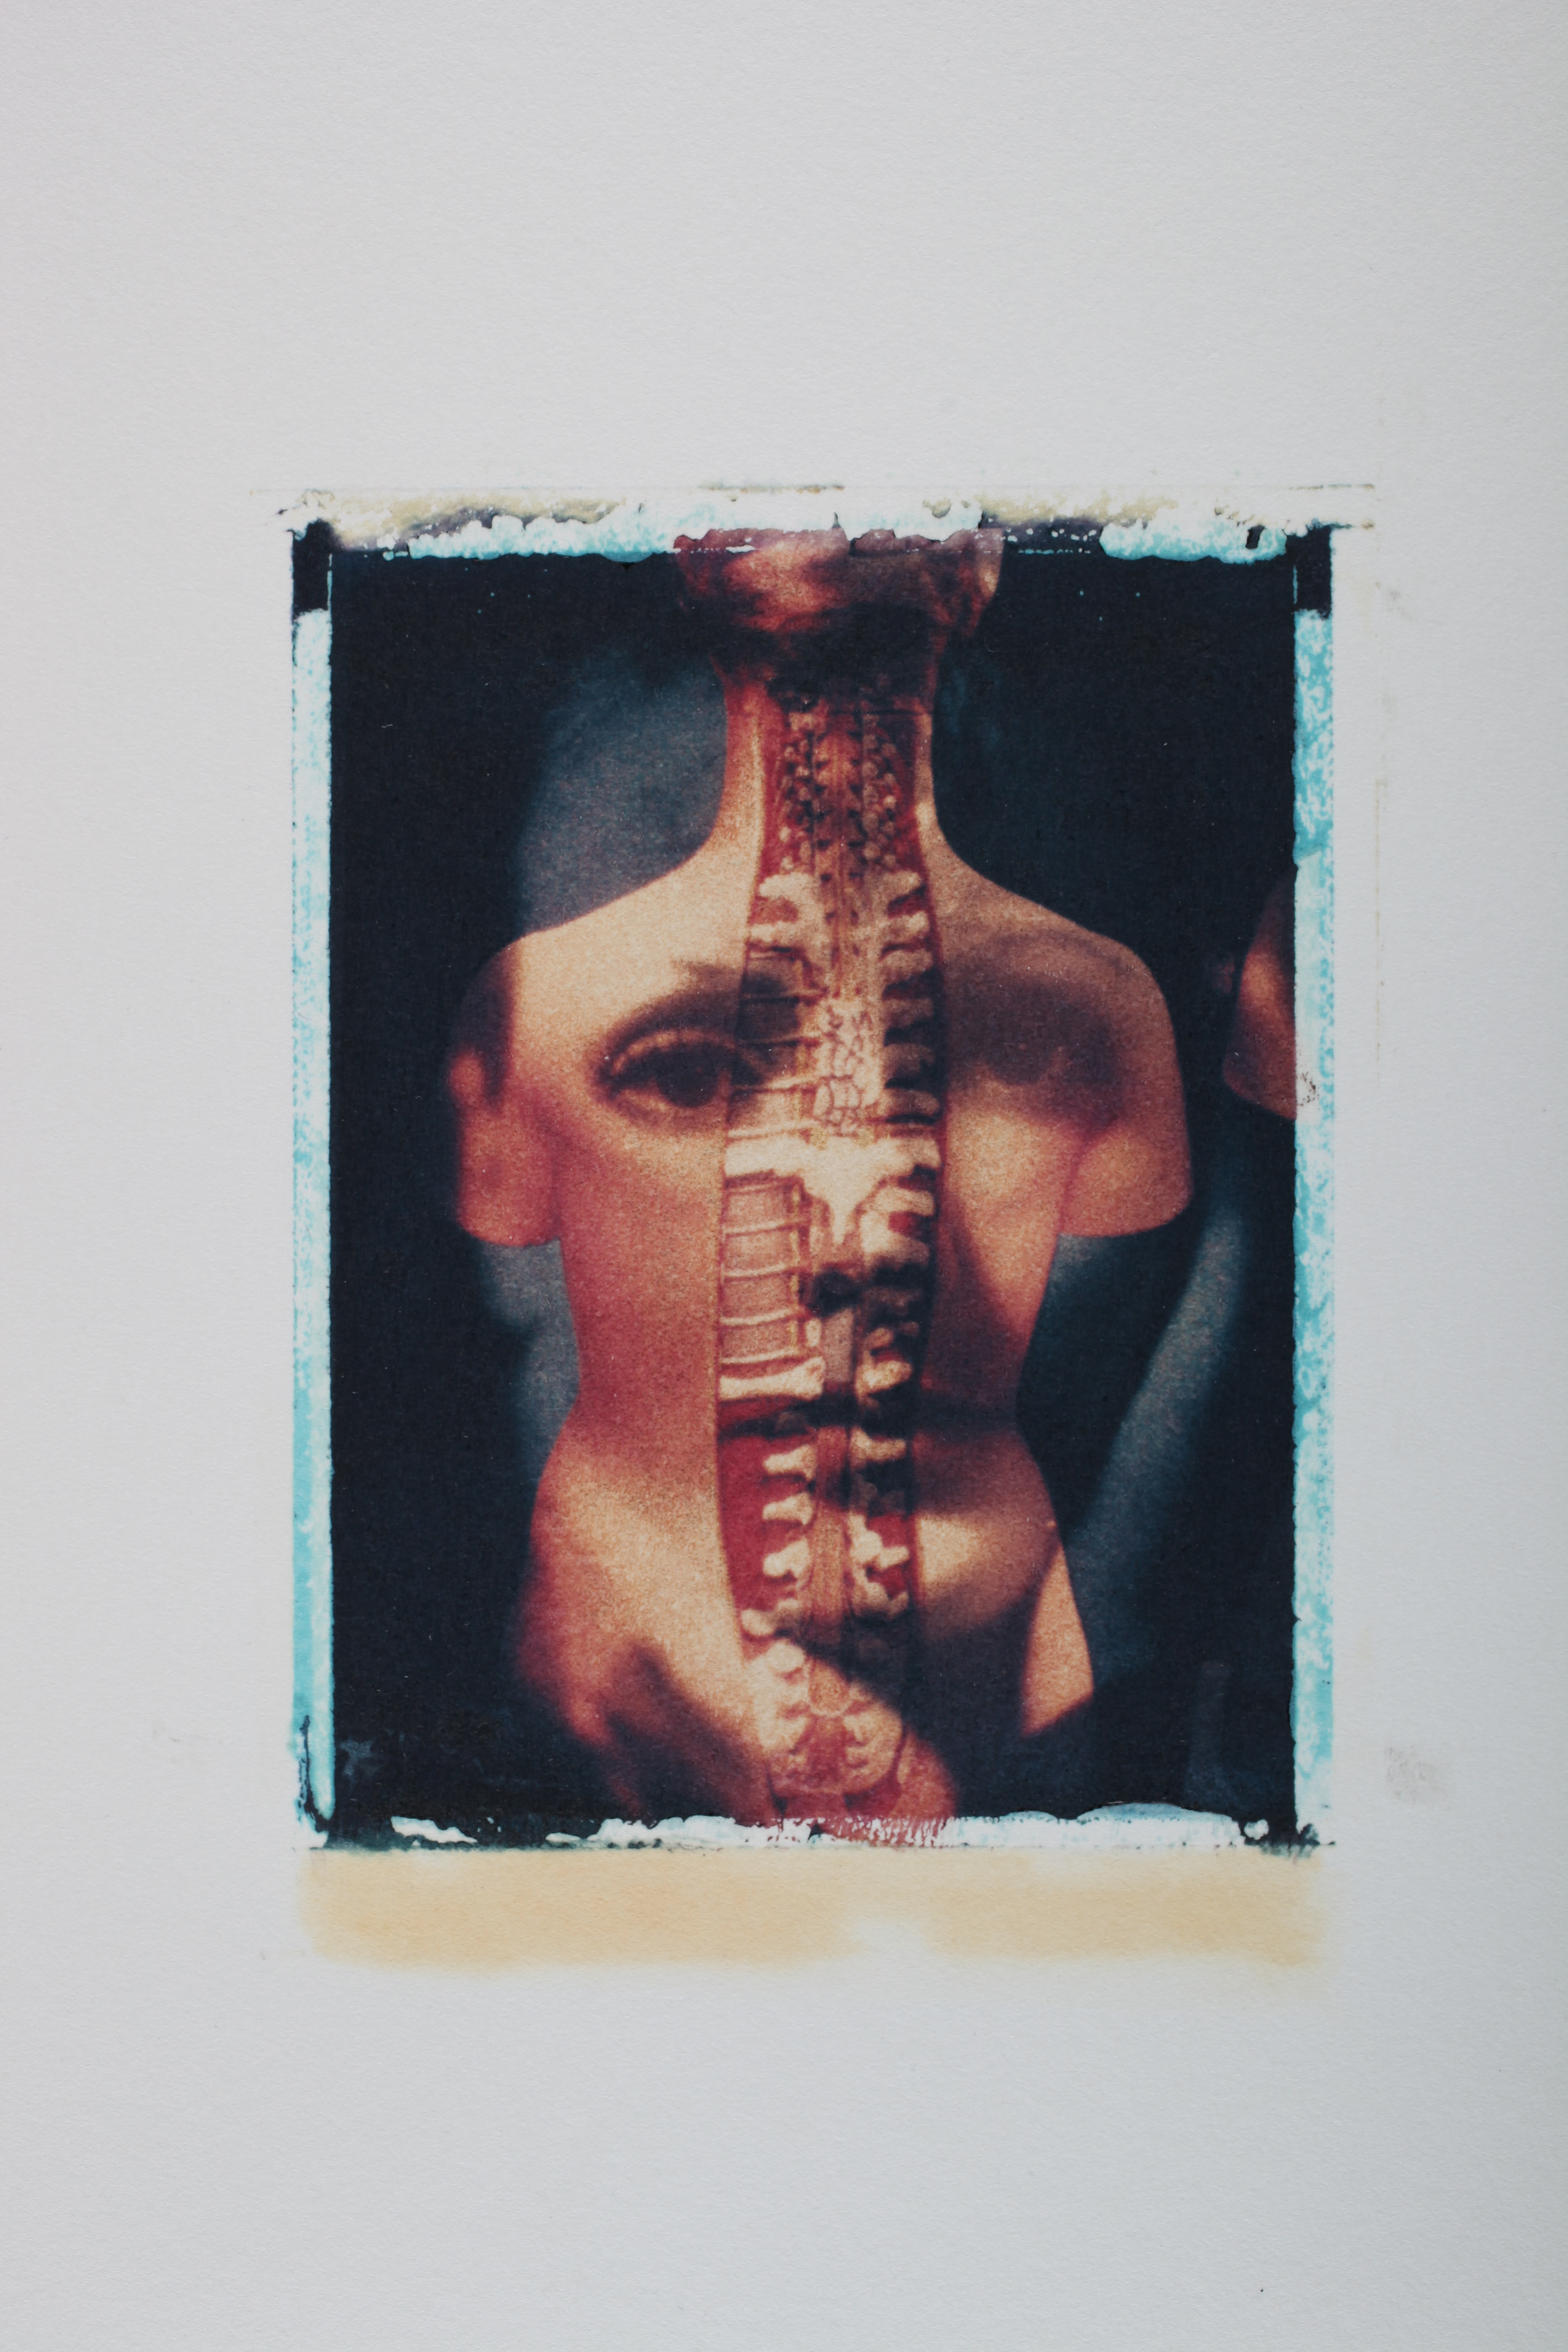 Multi-layered Polaroid image by Robert Seydel with woman's face and body with spine exposed